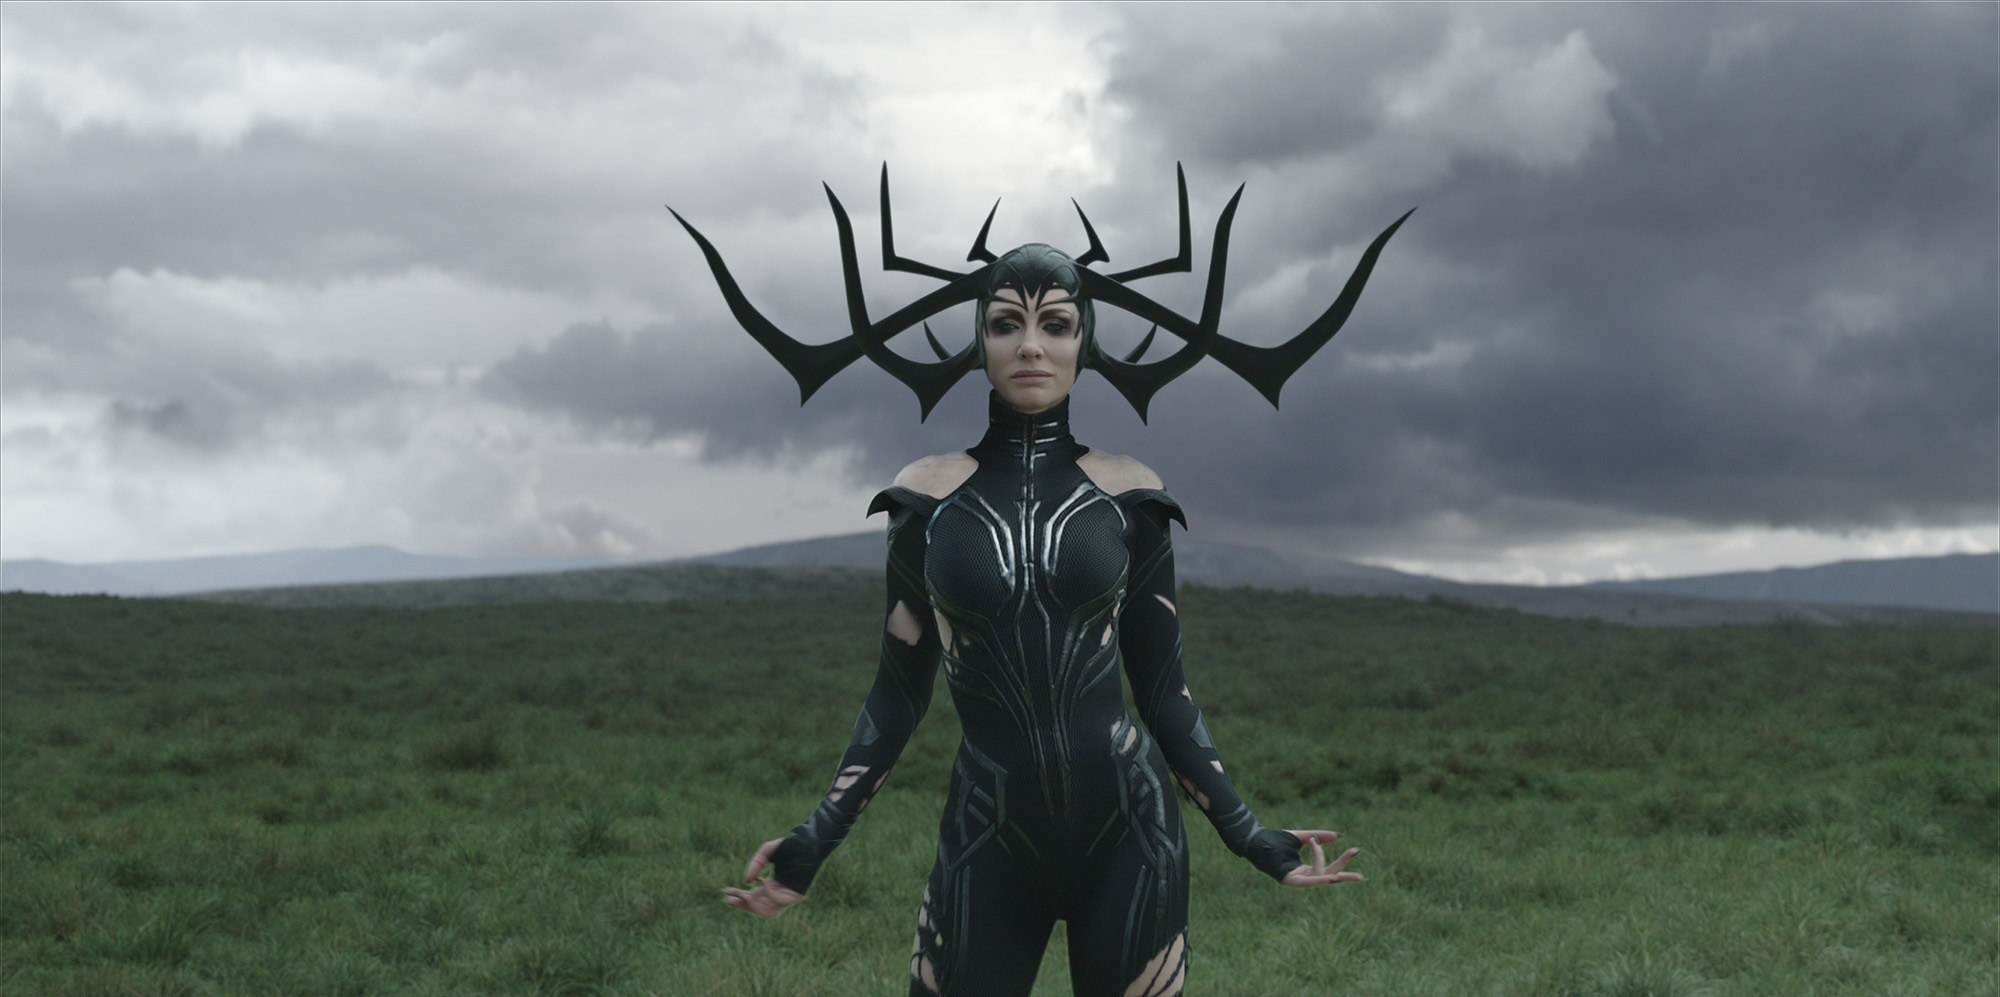 Cate Blanchett as Hela in Thor Ragnarok (2017)